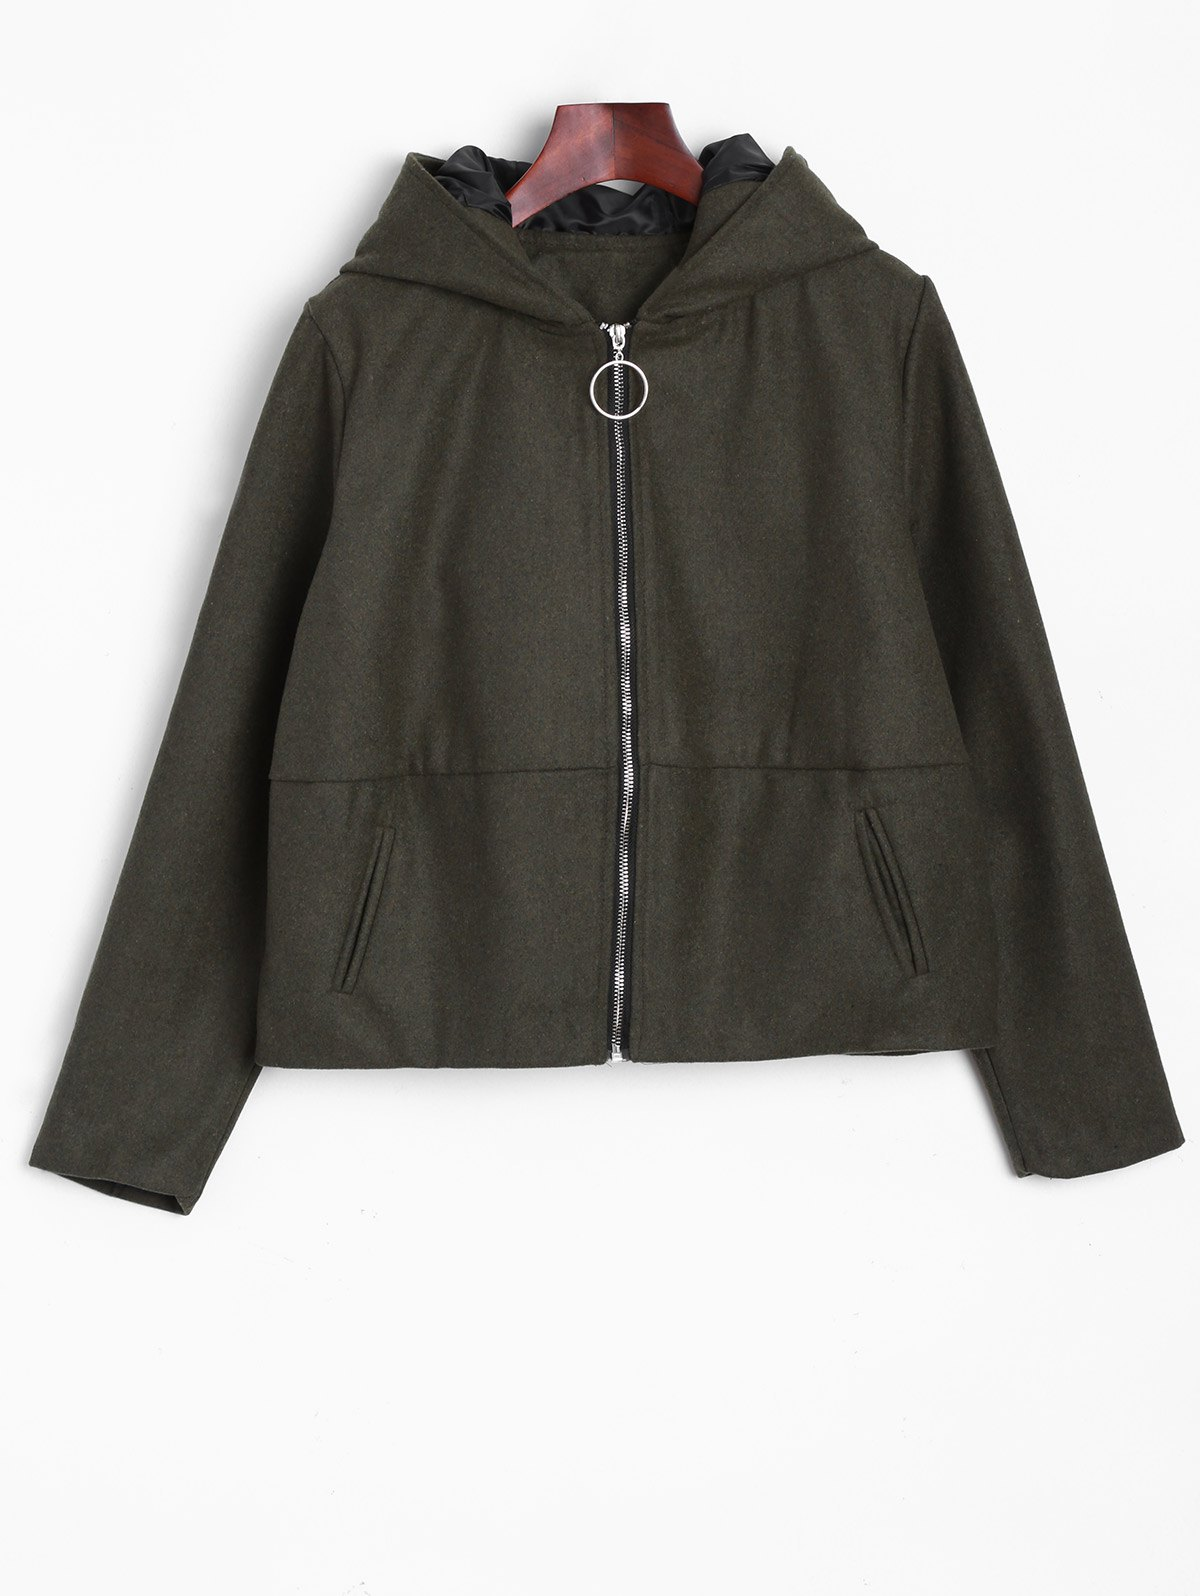 Oreilles Hooded Bomber Jacket